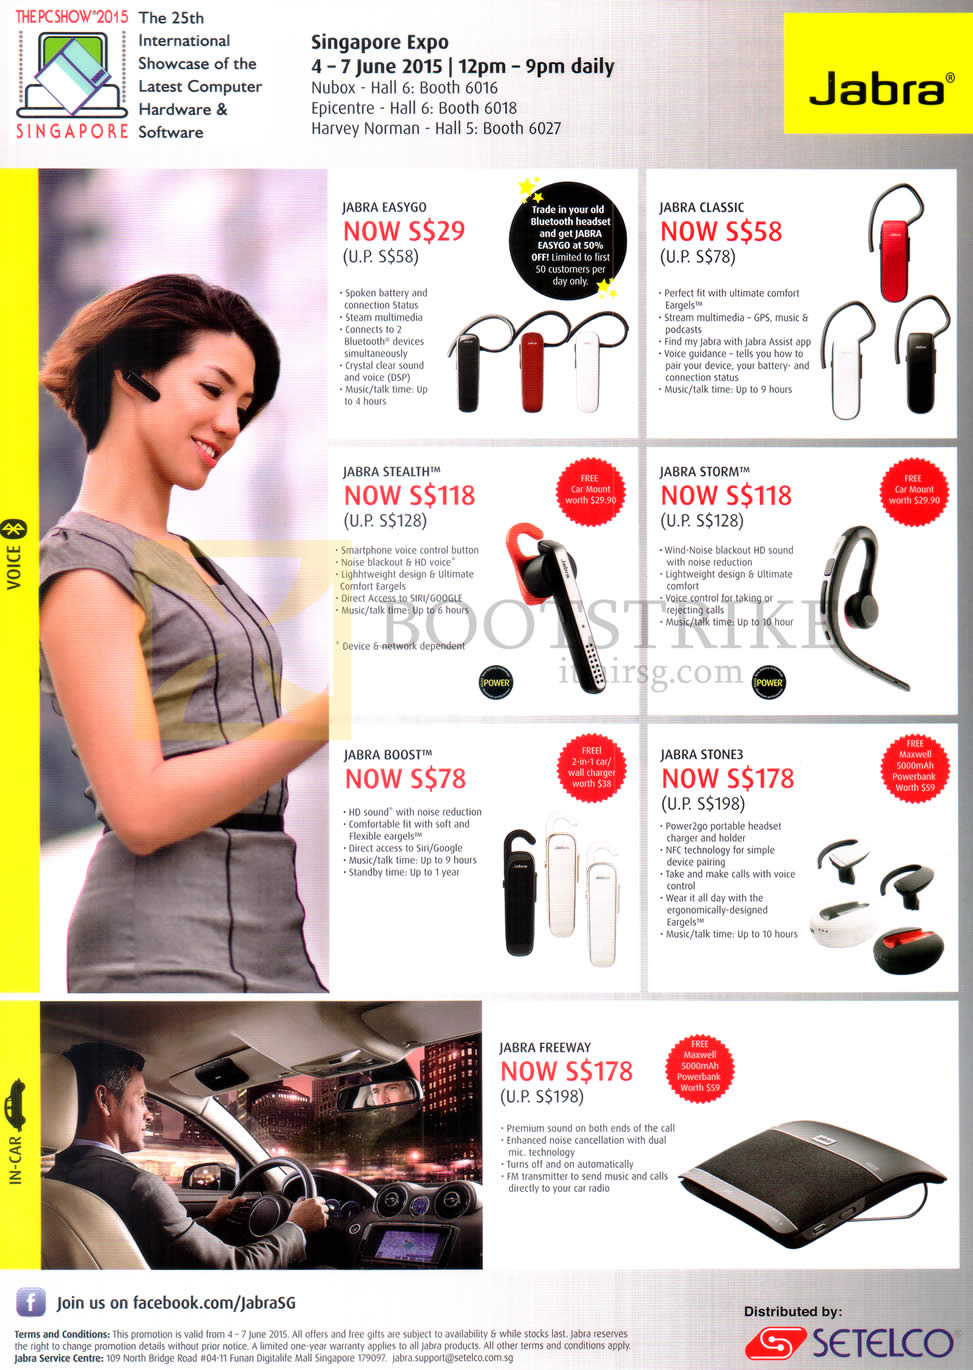 PC SHOW 2015 price list image brochure of Jabra Bluetooth Headsets Easygo, Classic, Stealth, Storm, Boost, Stone 3, Freeway